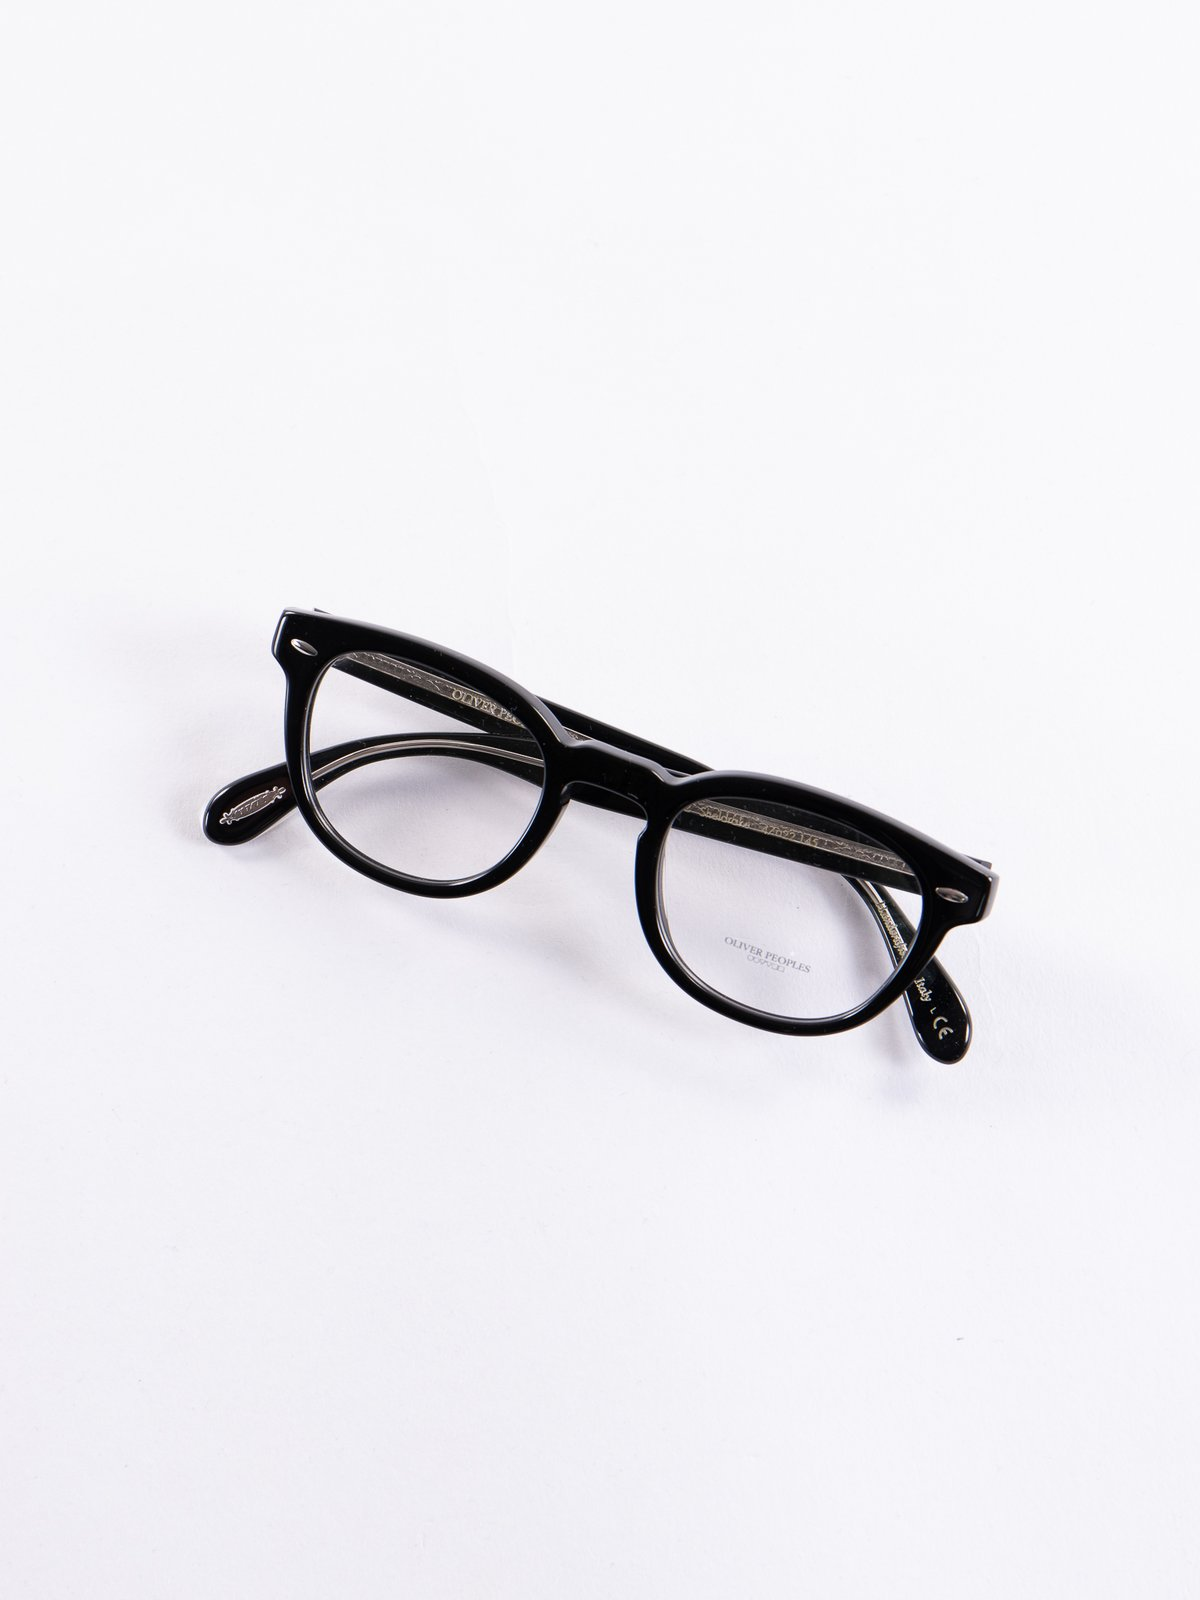 Black Sheldrake Optical Frame - Image 1